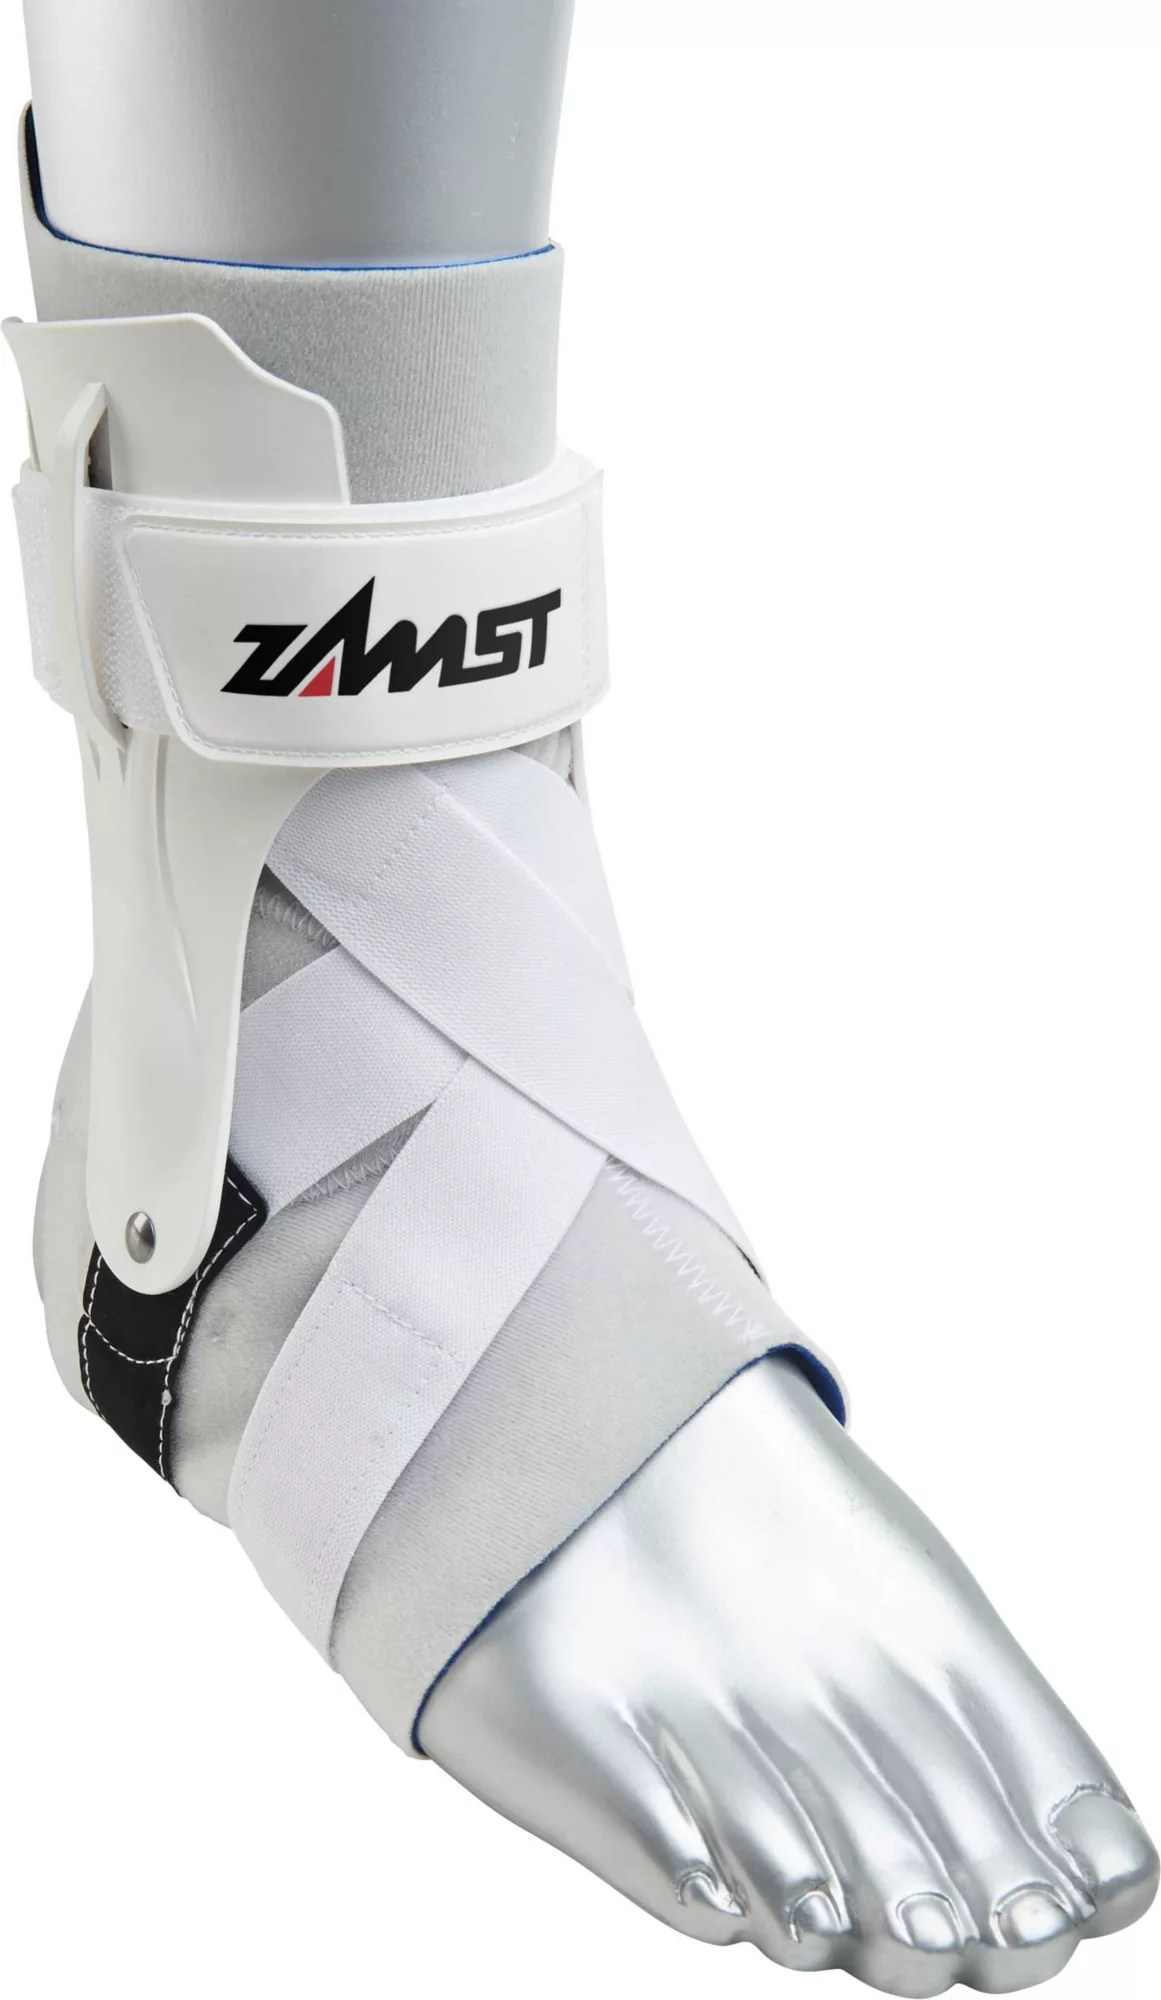 Zamst  dx ankle brace noimagefound previous also dick   sporting goods rh dickssportinggoods